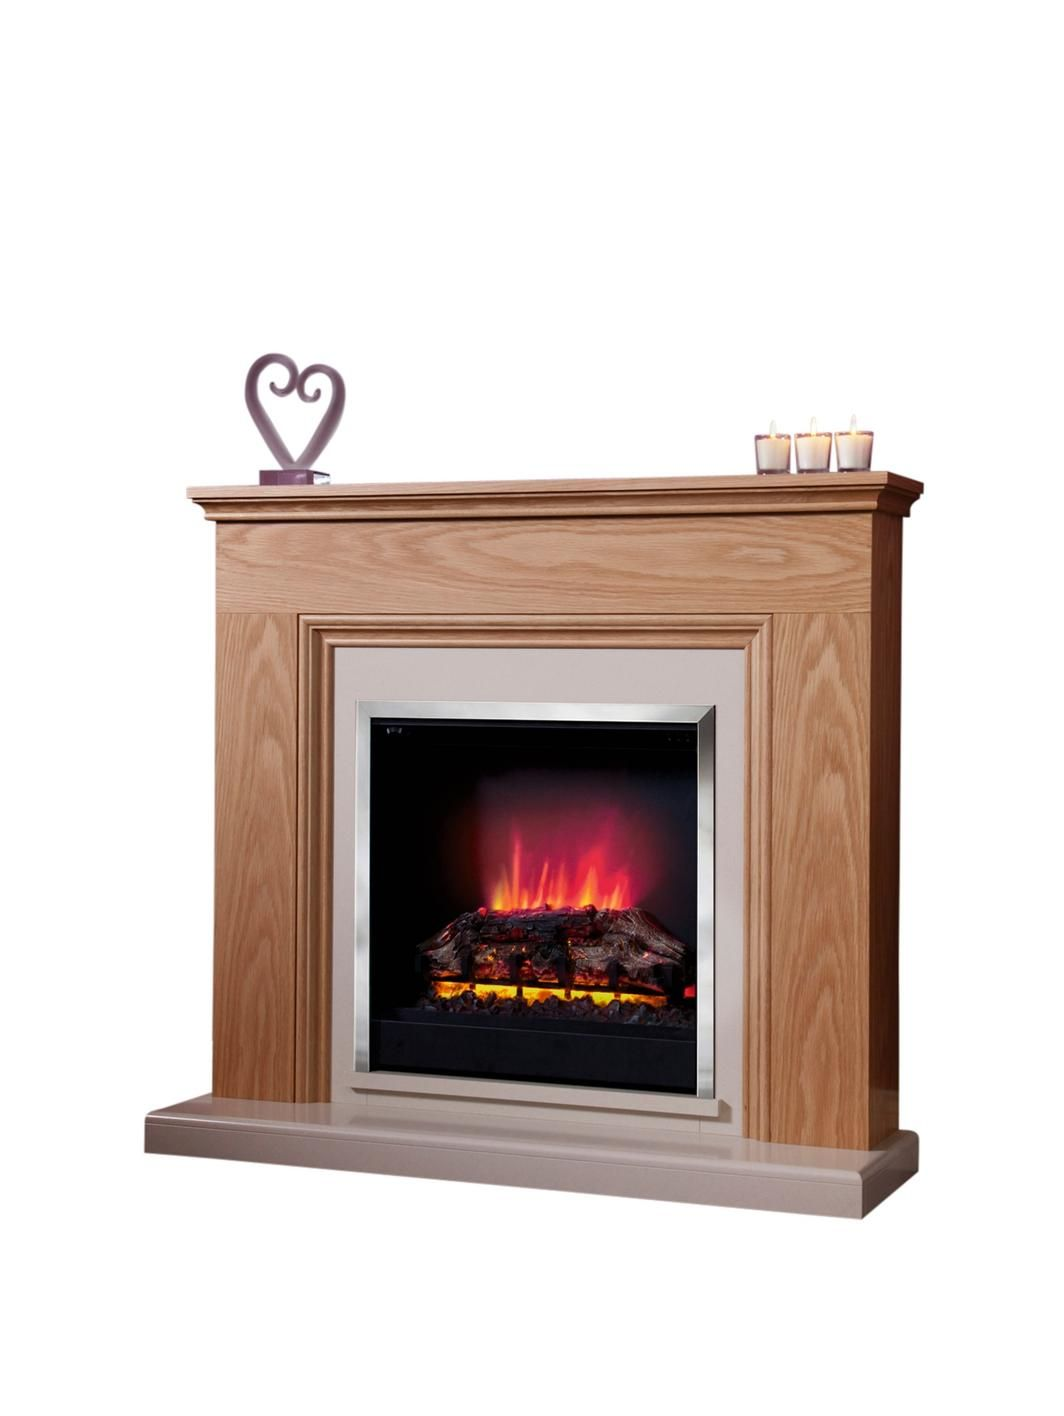 Be Modern Stanton Oak Electric Fireplace Suite Electric fireplace